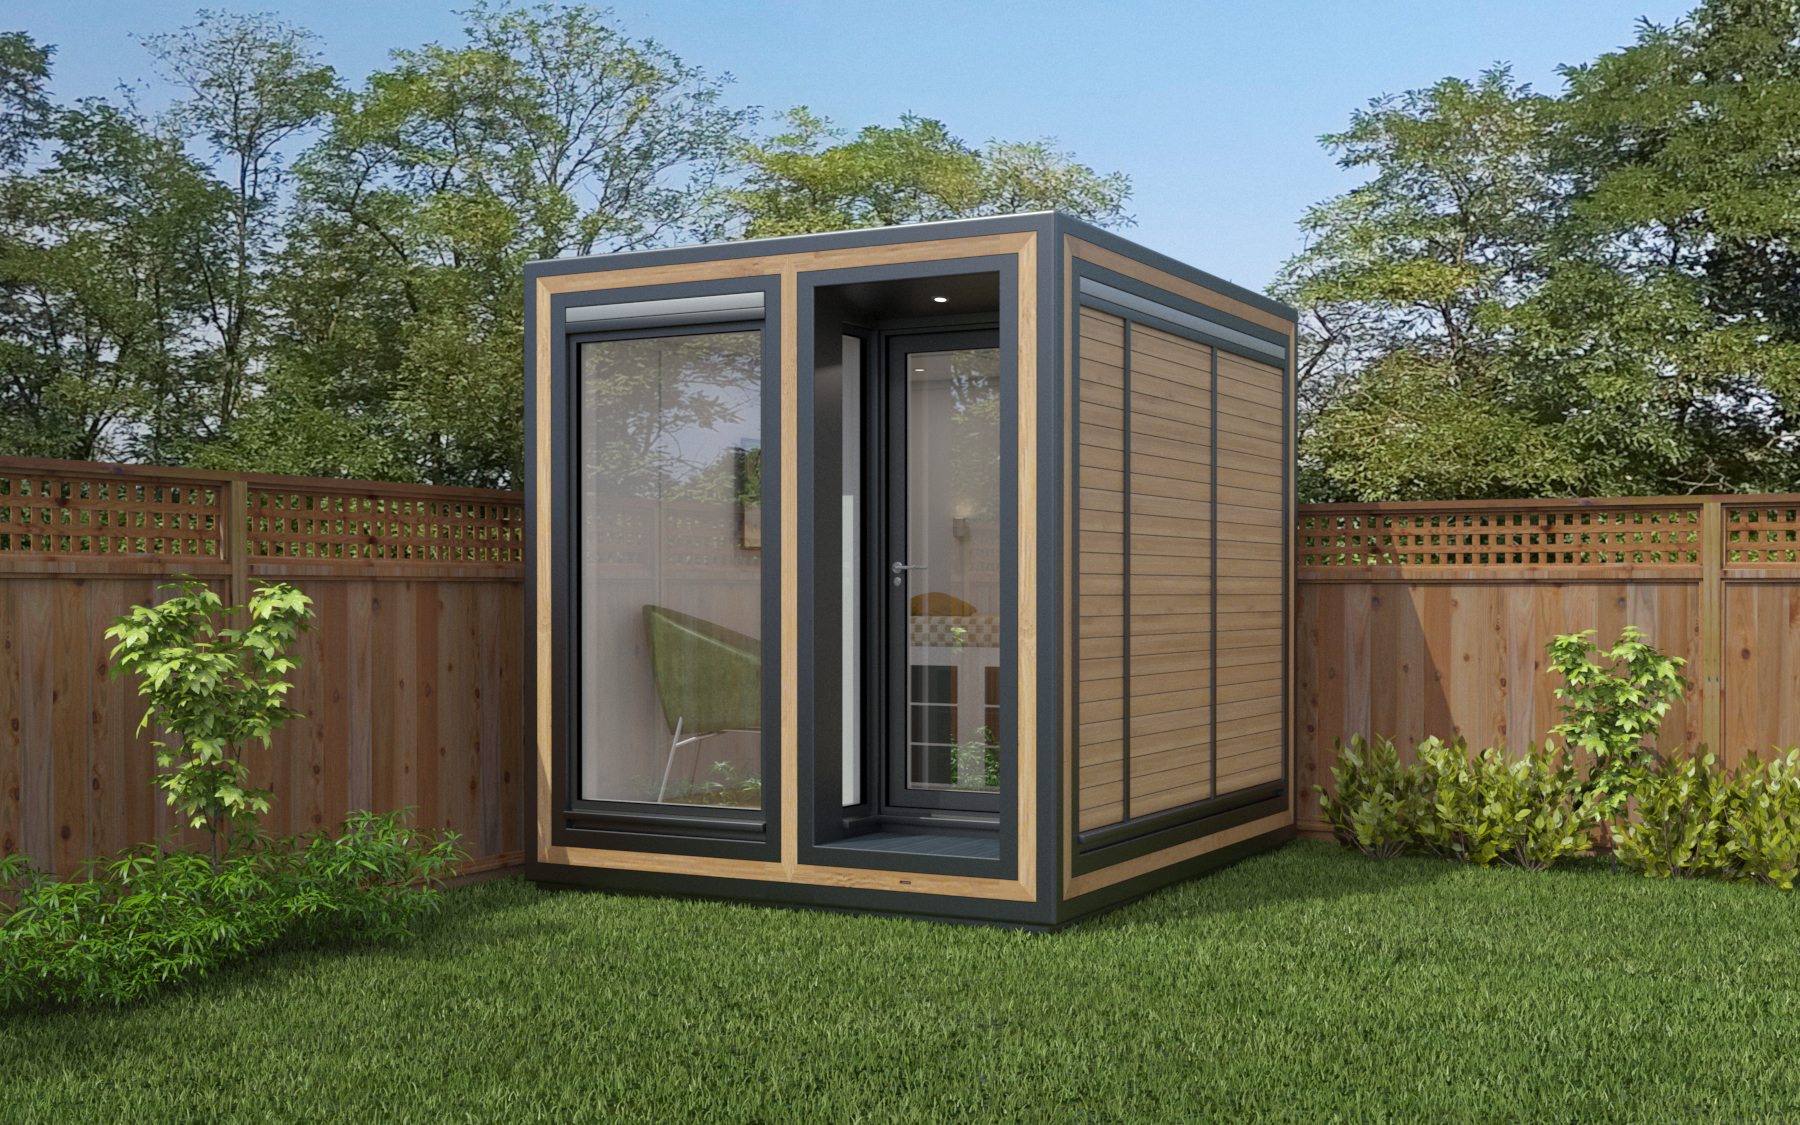 ZEDBOX 225  (2 x 2.5)  Internal Size: 2117x 2720  External Size: 2587 x 3190  Bed Options: Single  Kitchen Options: No  Wet Room Options: No  Portico: Yes  Price:  £15,000    Optional Extras    Request Zedbox Catalogue